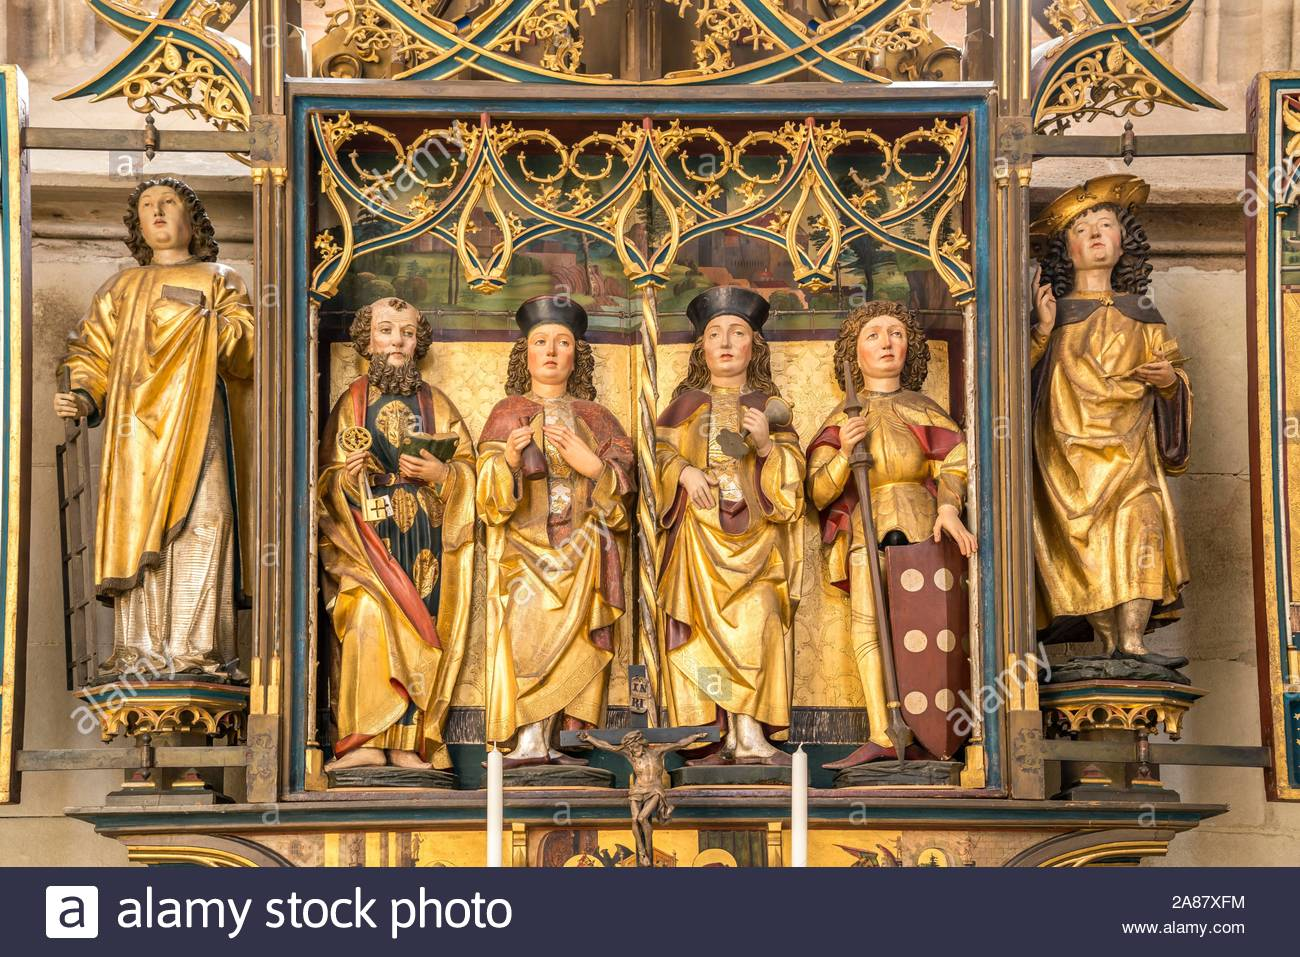 altar of the holy trinity in the catholic parish church st georg dinkelsbuhl middle franconia bavaria germany 2A87XFM